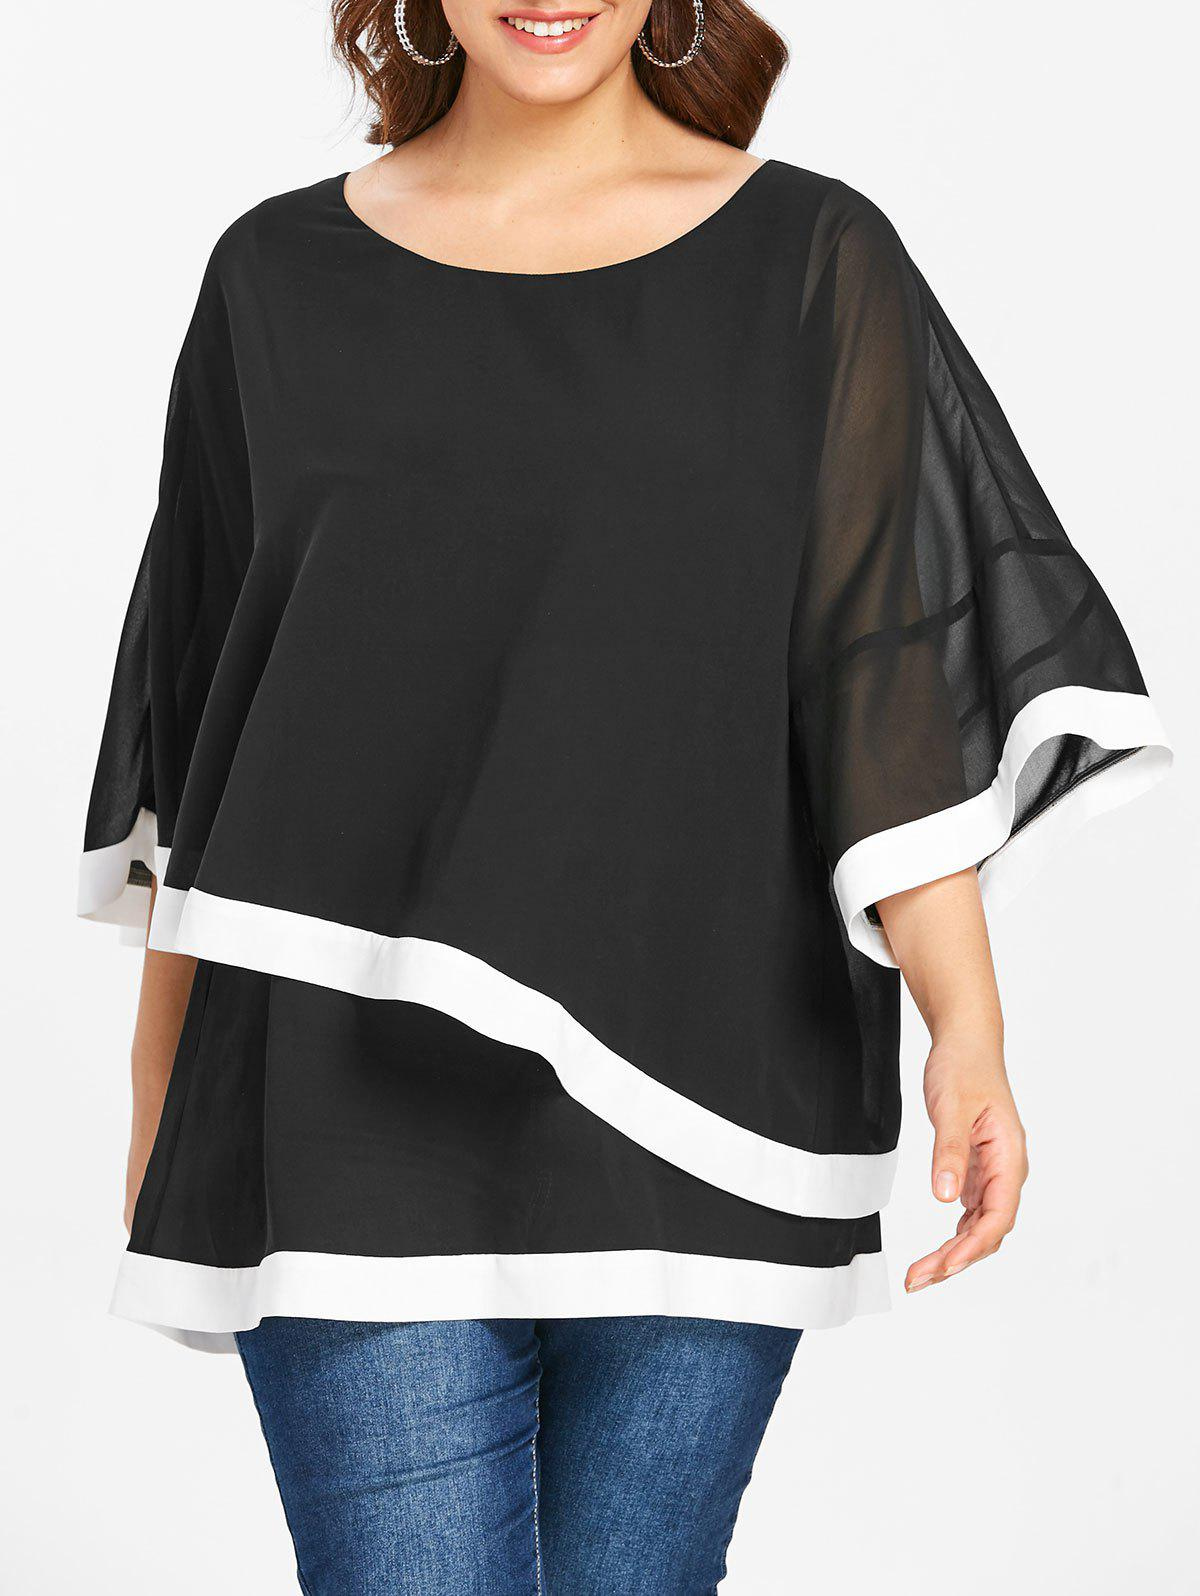 25748a5964d 62% OFF   2019 Plus Size Overlay Chiffon Blouse